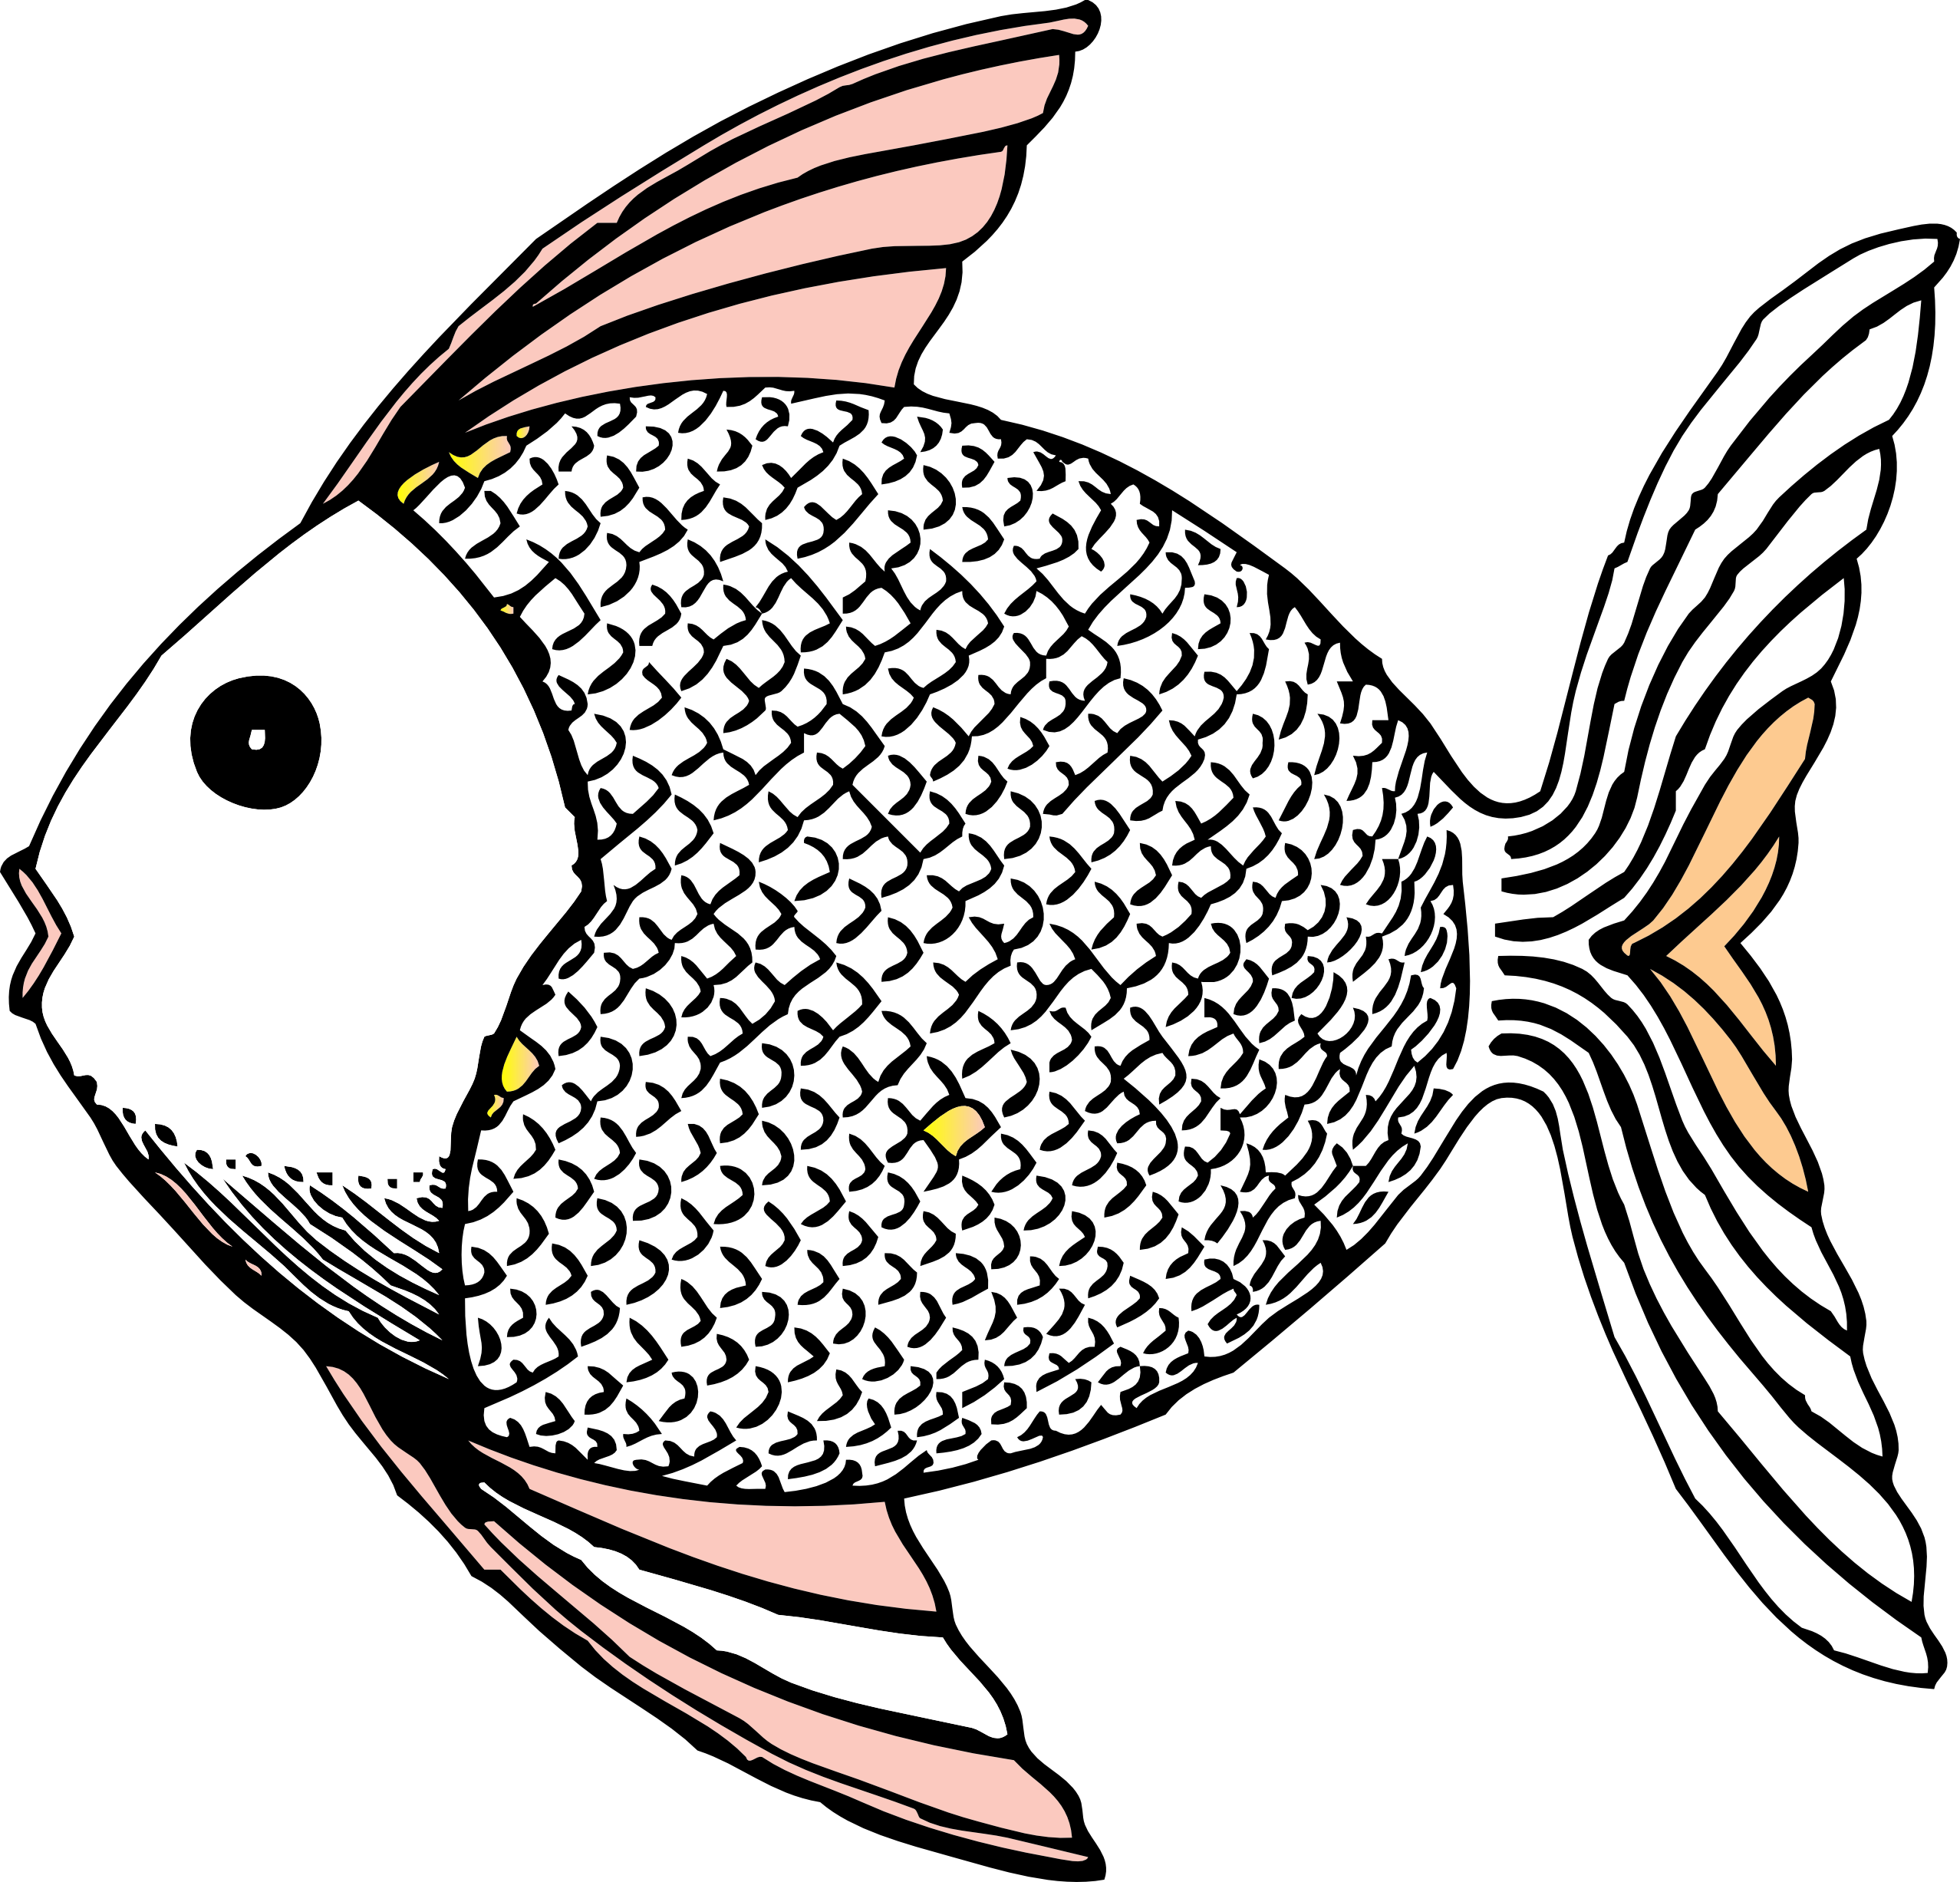 Fishing clipart black and white. Fish clip art tropical